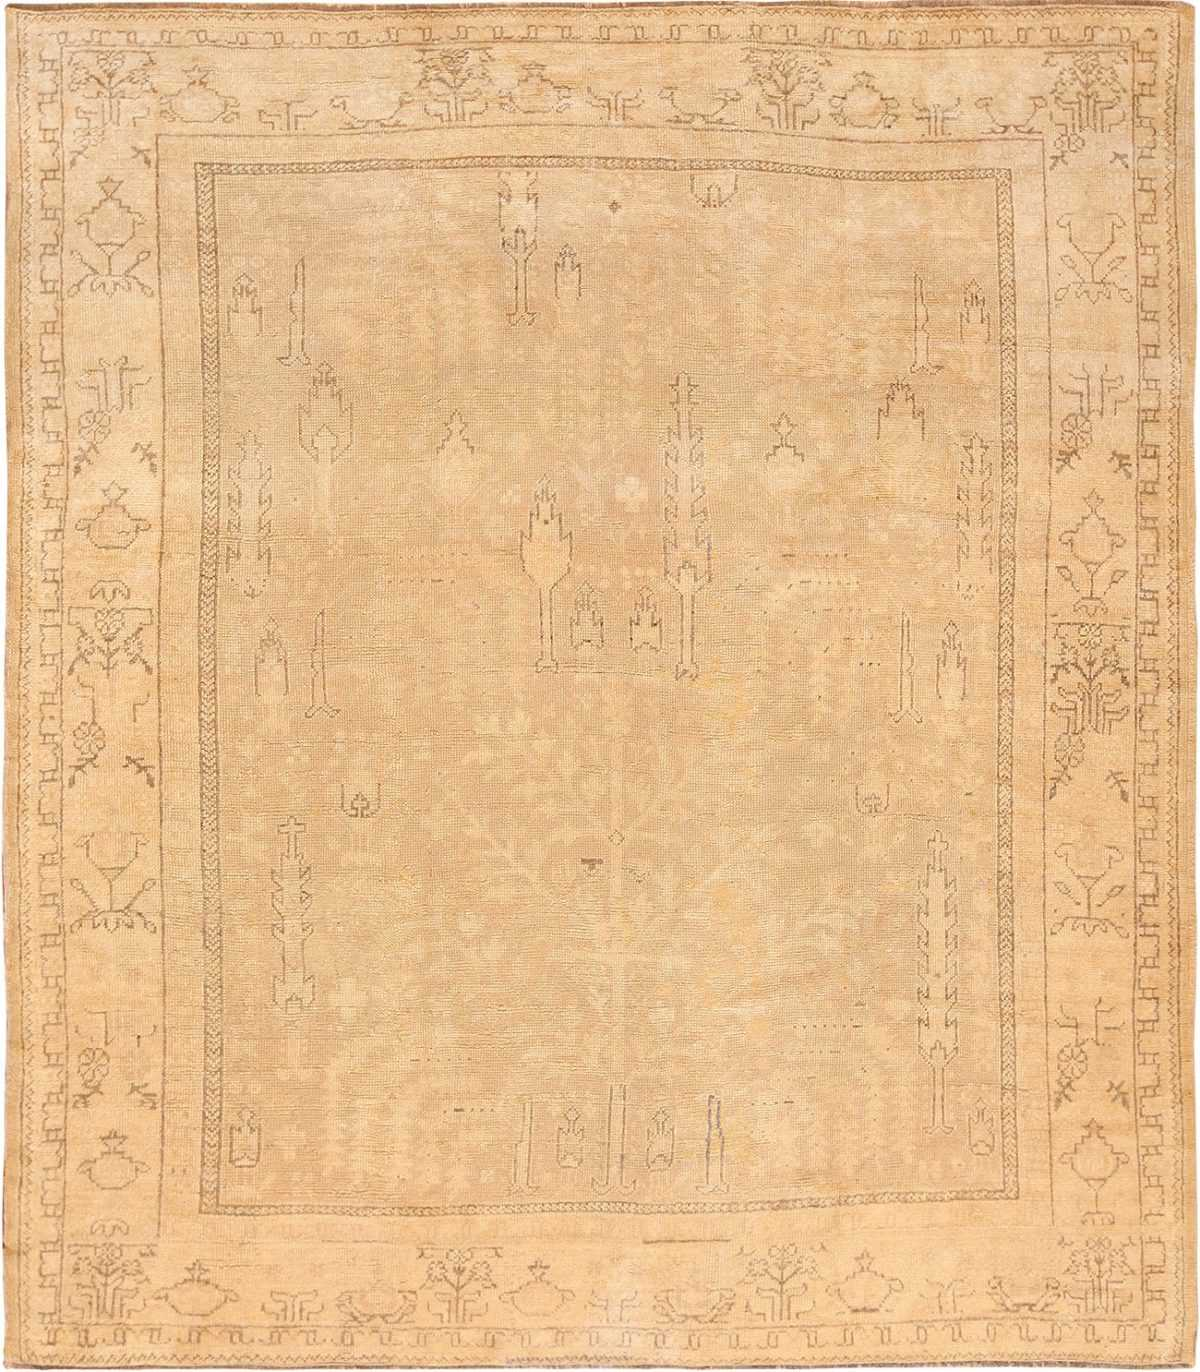 Picture of a beautiful soft tree of life design antique decorative Turkish Oushak rug #49743 from Nazmiyal Antique Rugs in NYC